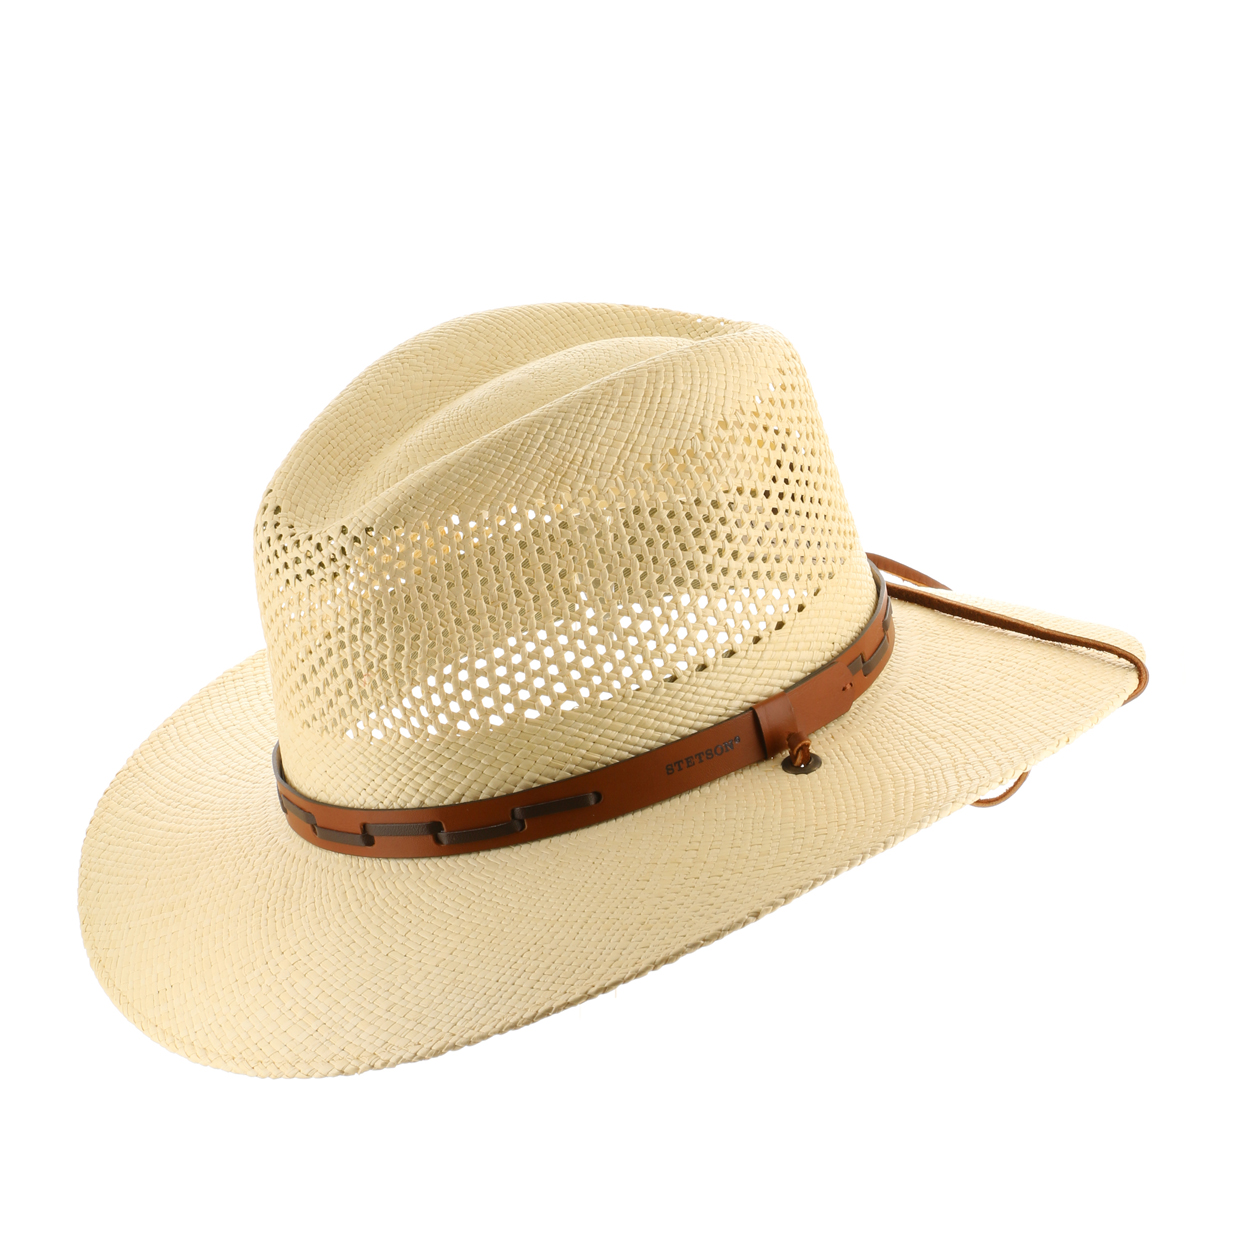 looking for australian hat band cheap Barmah foldaway suede – suede leather australian hat regular price: $5398 special price $4048 add to cart since 1973, hatcountry has led the way.